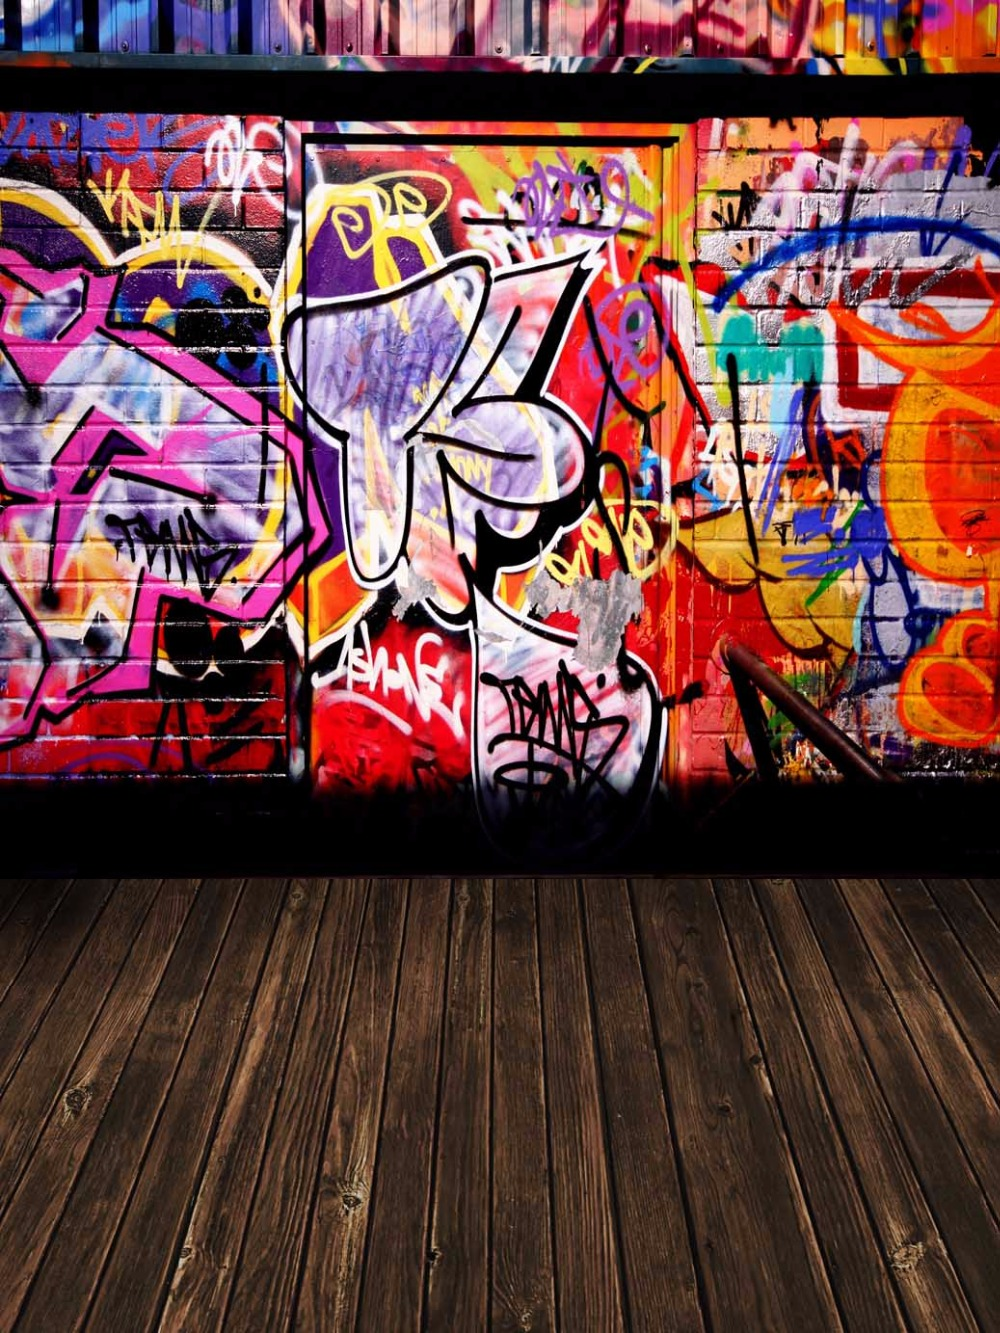 Aliexpress Com Buy Cool Graffiti Wall Dark Wood Floor Photography Background For Teenage Vinyl Backdrops For Photography Custom Photo Studio Props From